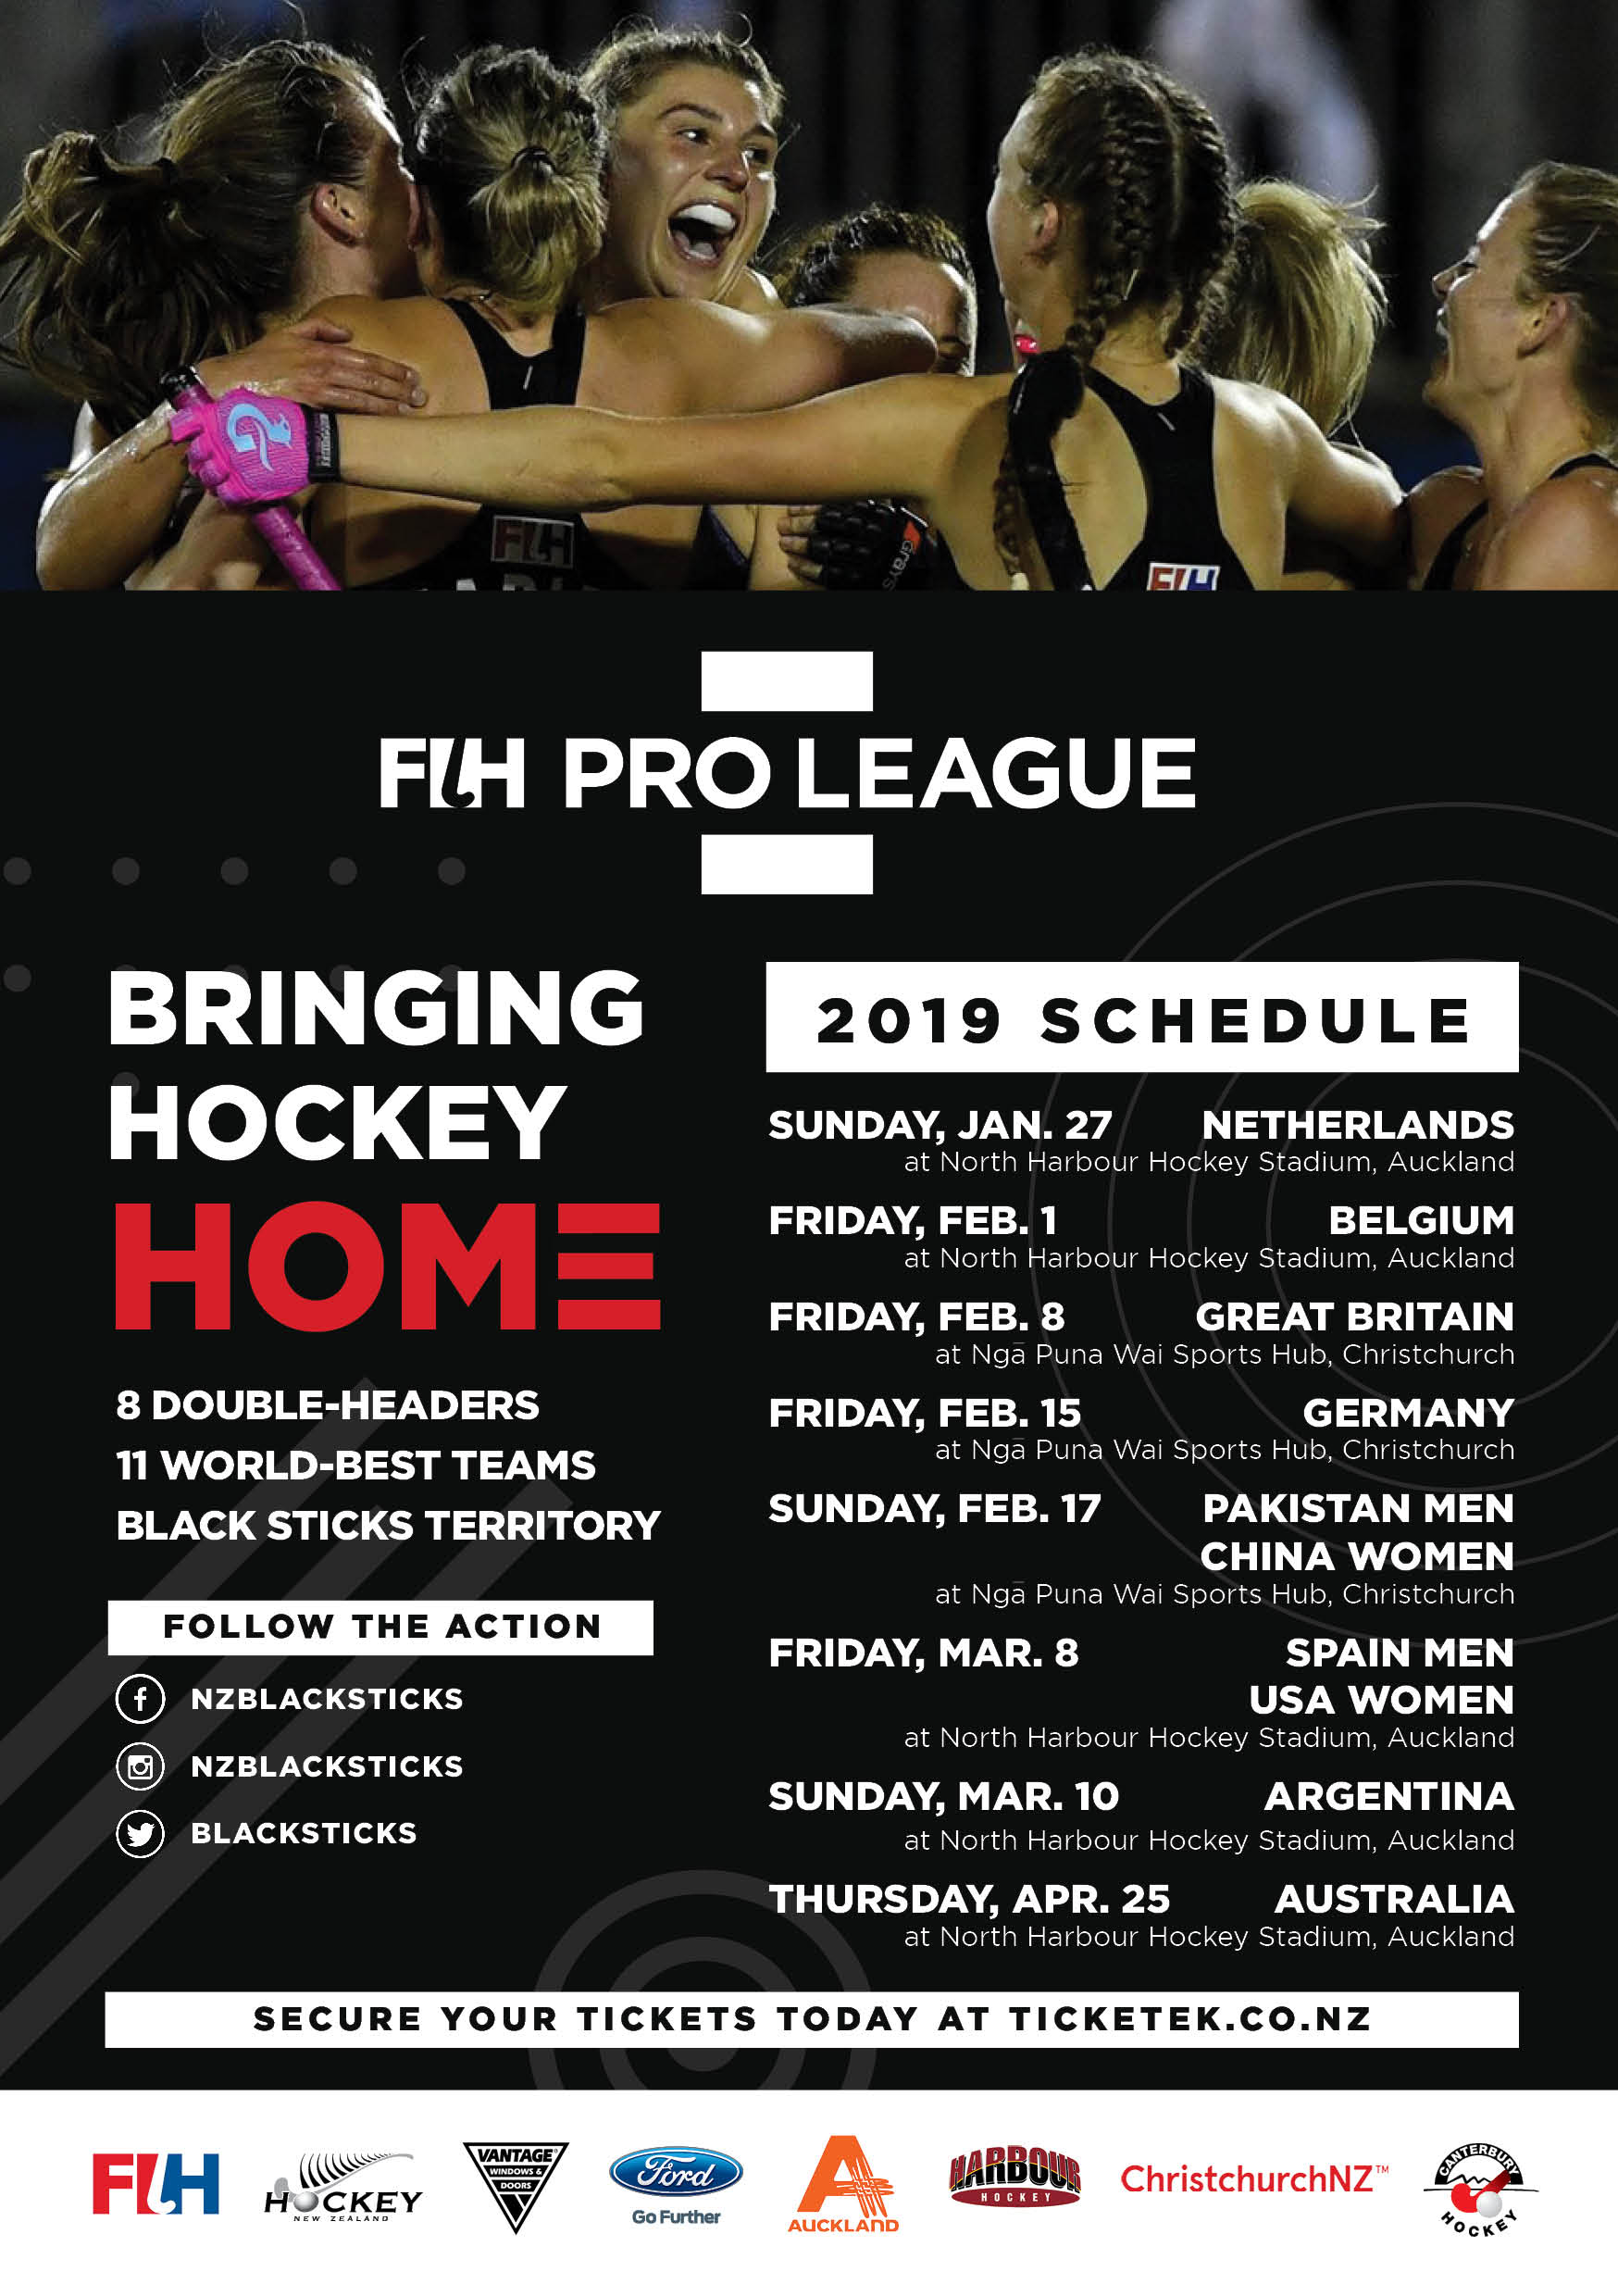 FIH Pro League - Bringing Hockey Home - Nelson Hockey Association